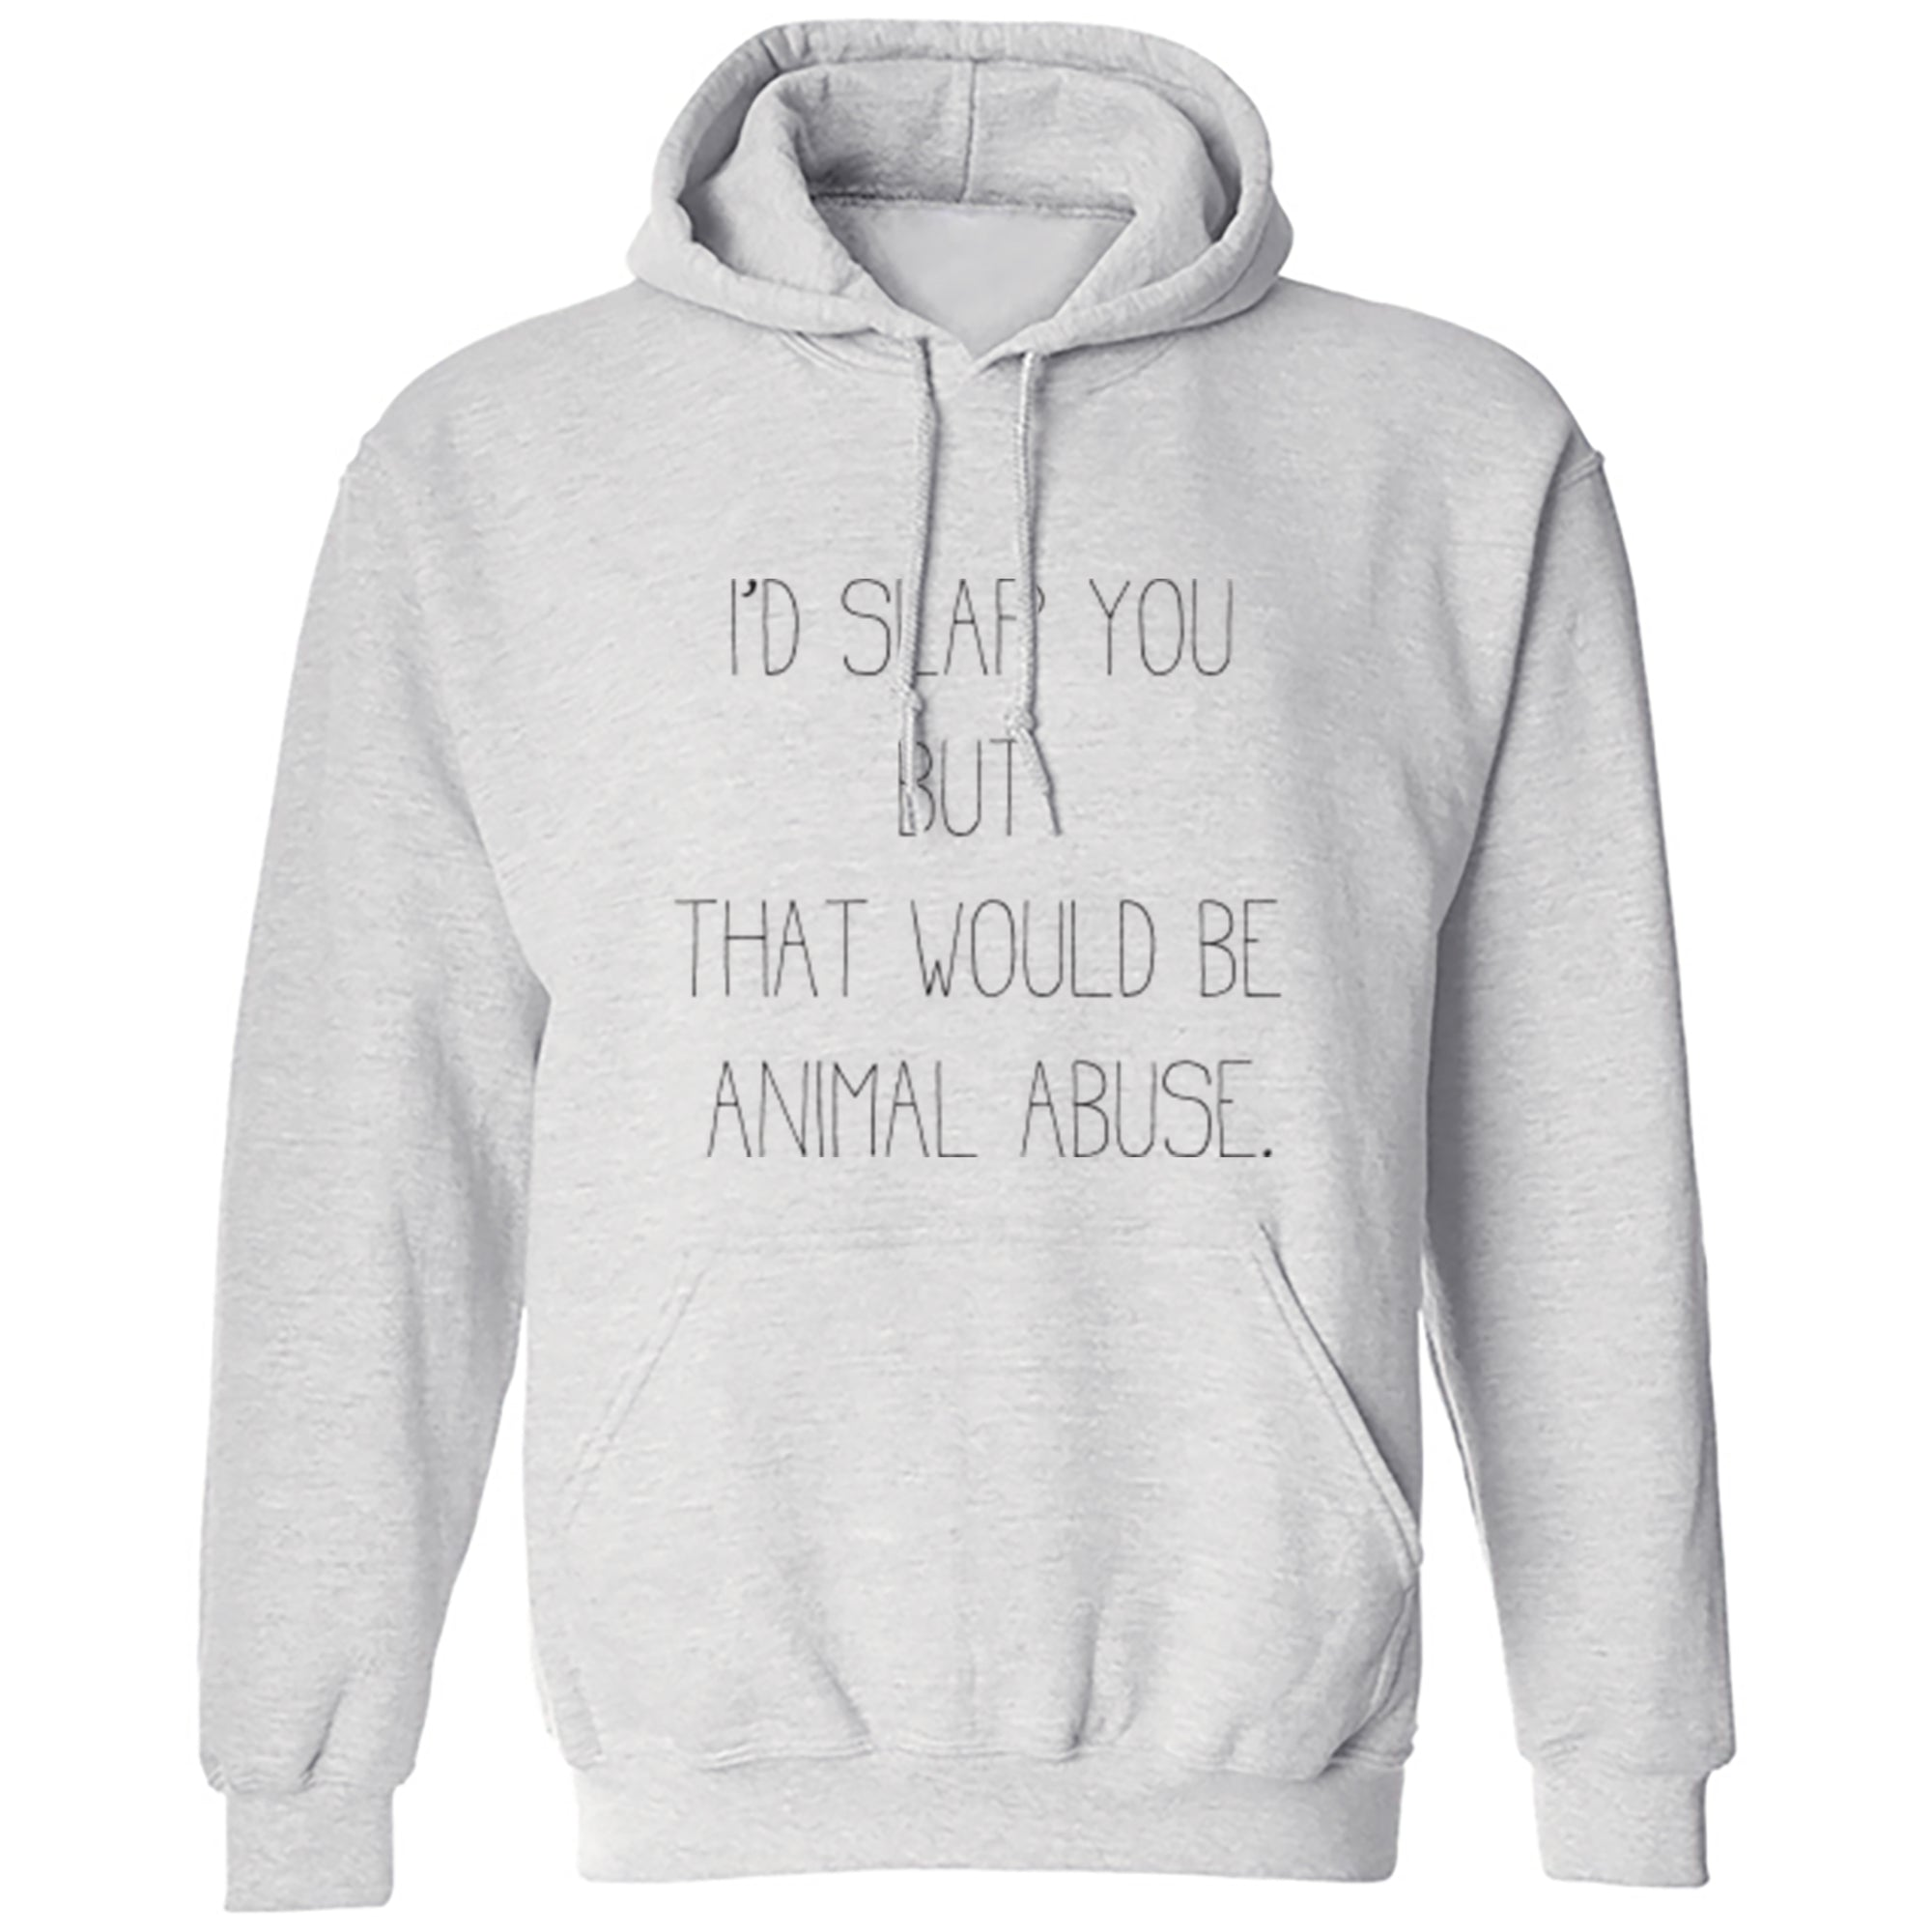 I'd Slap You But That Would Be Animal Abuse Unisex Hoodie S0589 - Illustrated Identity Ltd.